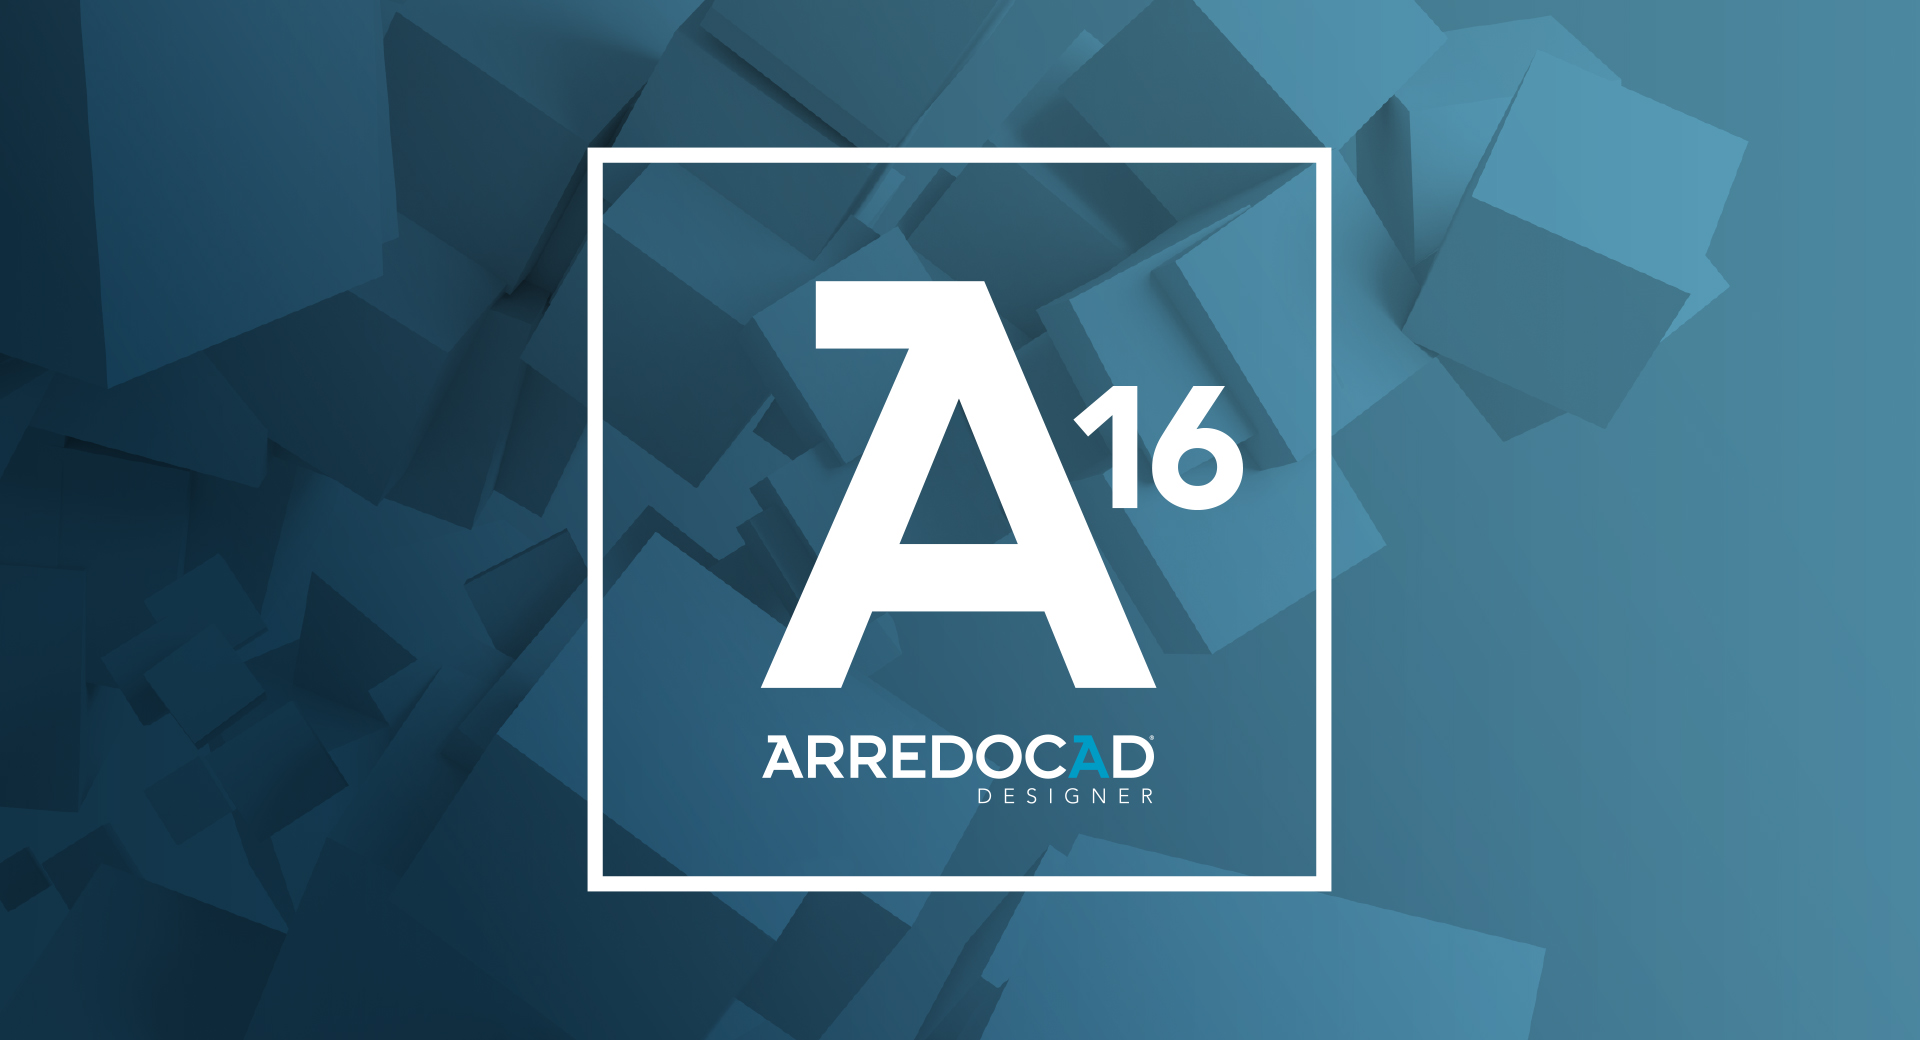 ArredoCAD Designer version 16: find out all the new tools for your 3D archive!